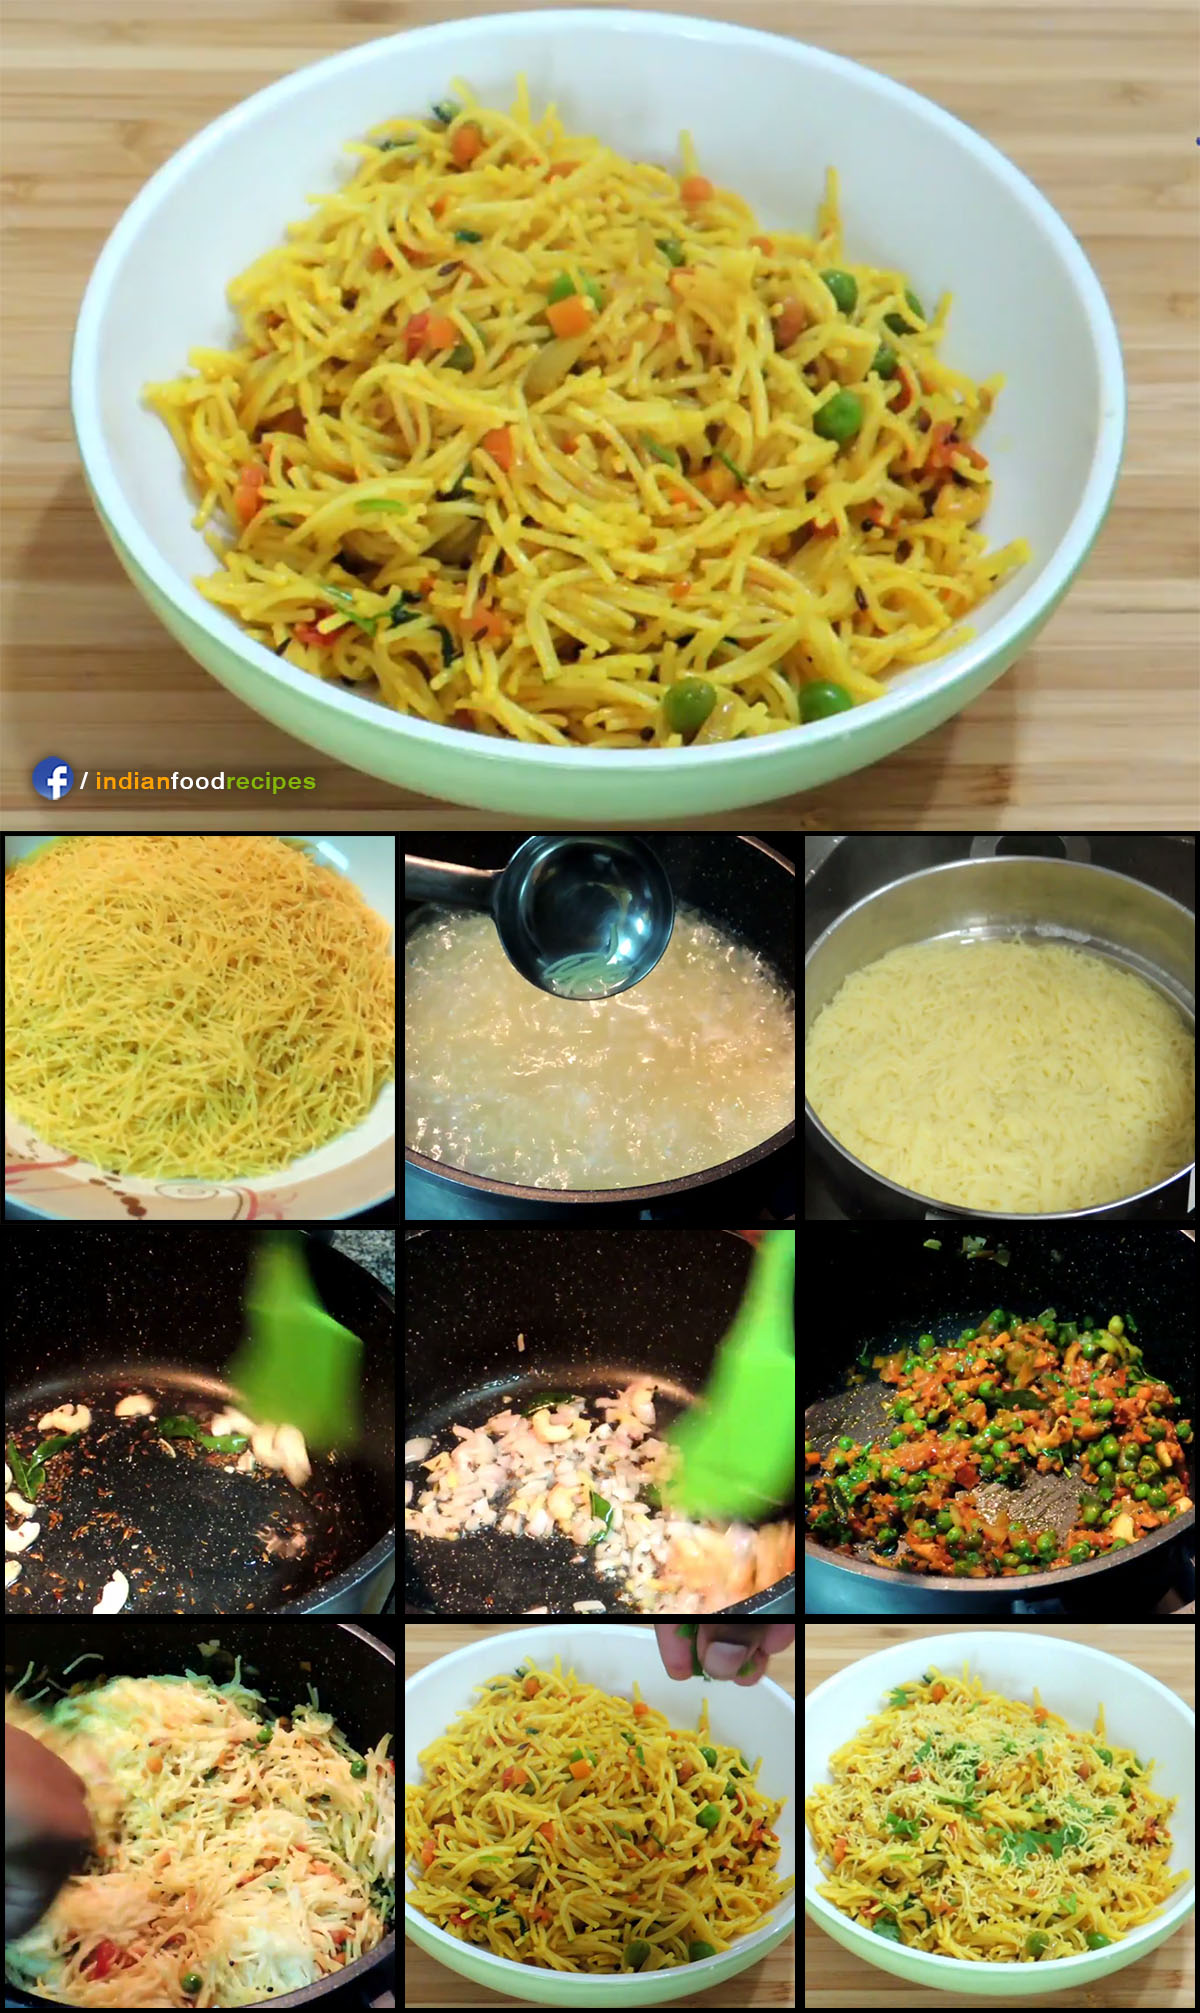 Semiya Upma Vermicelli Upma recipe step by step pictures